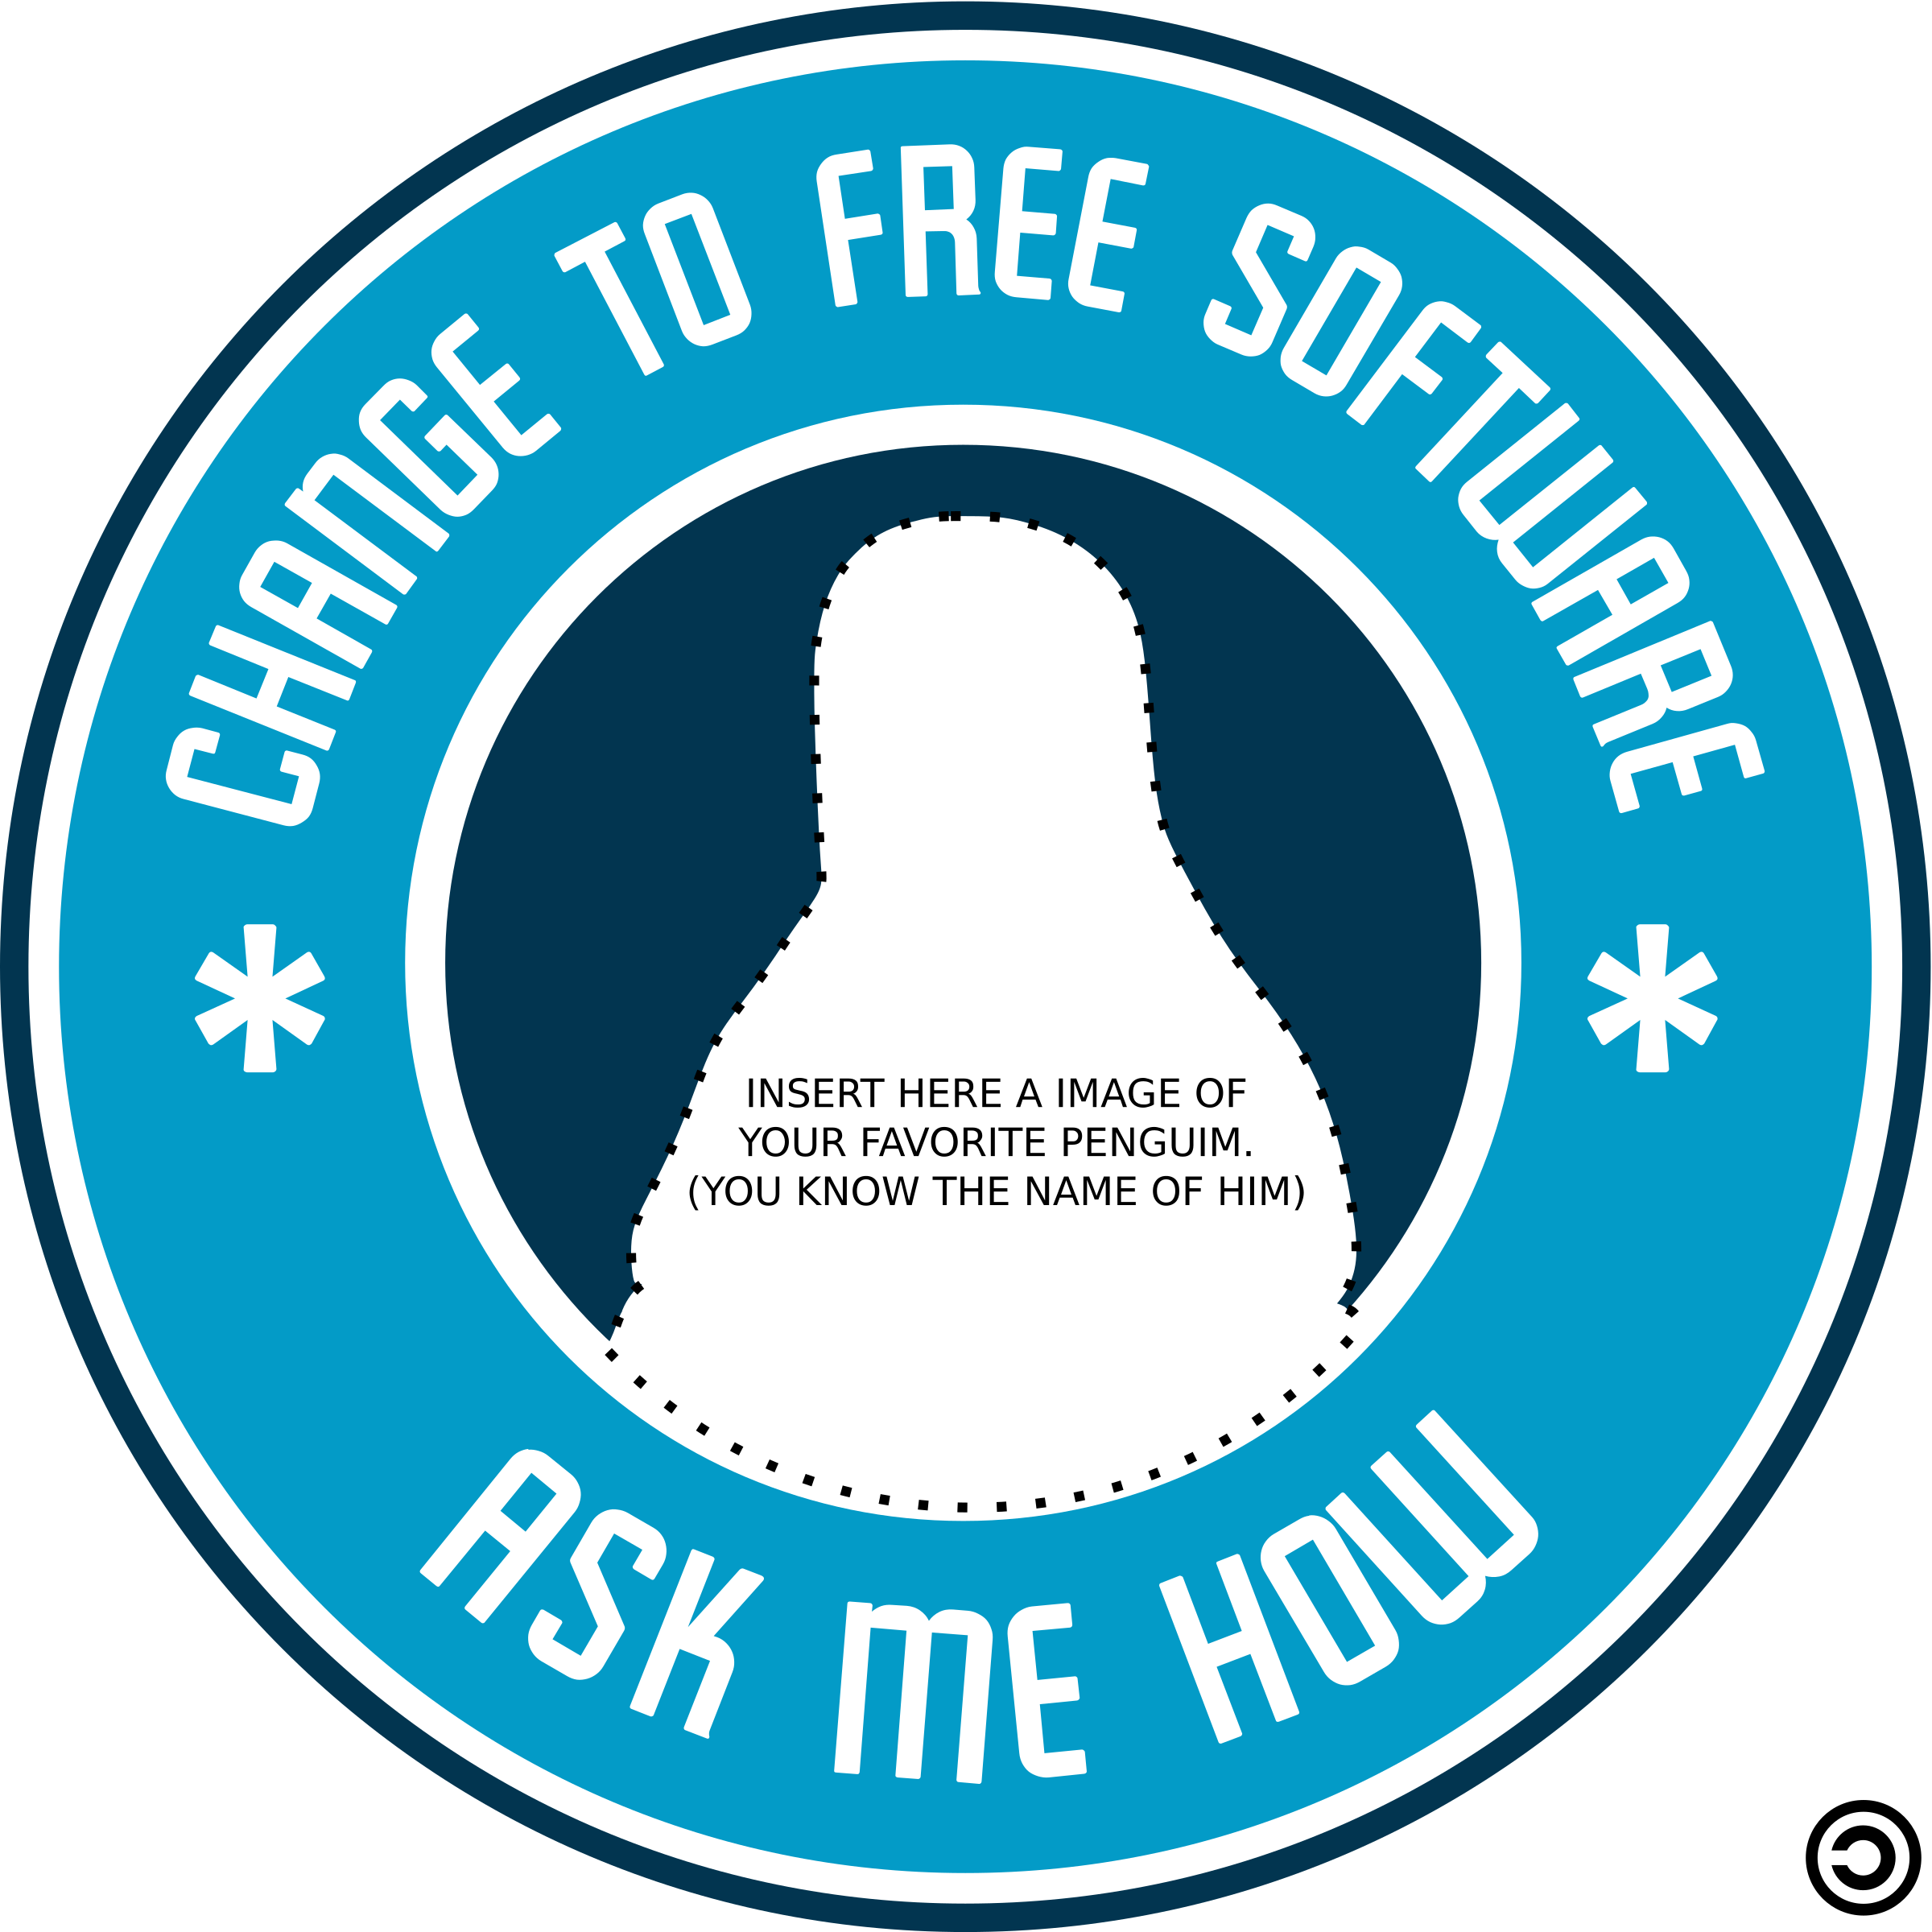 Change to Free Software - Ask me How by cliparteles